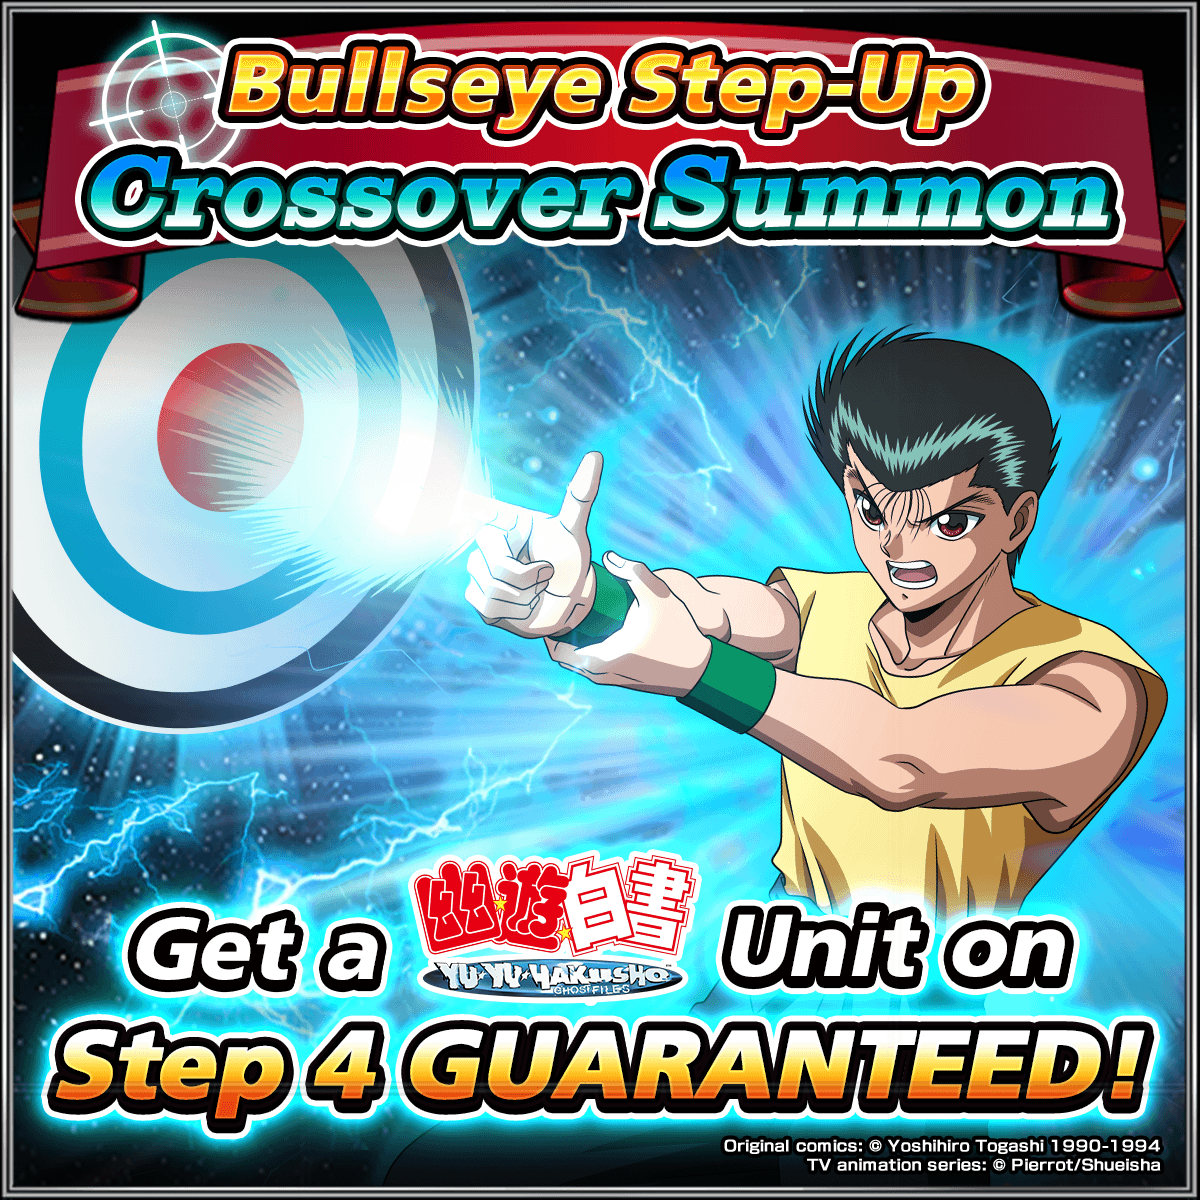 👉Yu Yu Hakusho 🎯Bullseye Step-Up Summon starts at Midnight 💥 Get a Crossover Unit on Step 4 ow.ly/CuFE50lkf5i Thank you Grand Summoners for sponsoring this post!